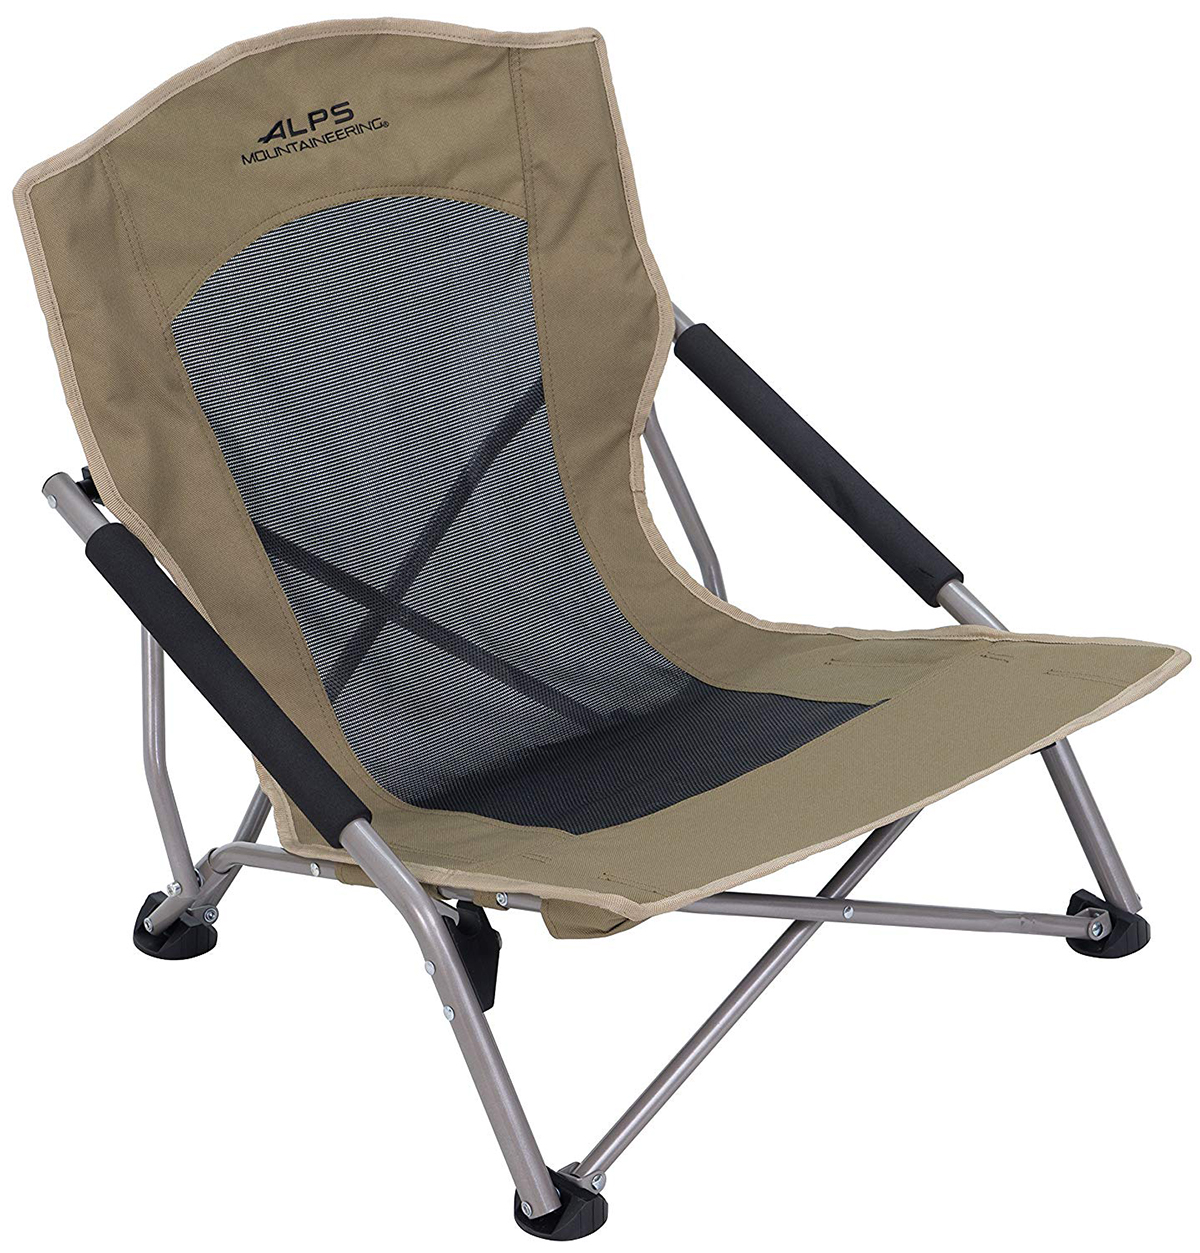 ALPS Mountaineering Folding Camping Chair